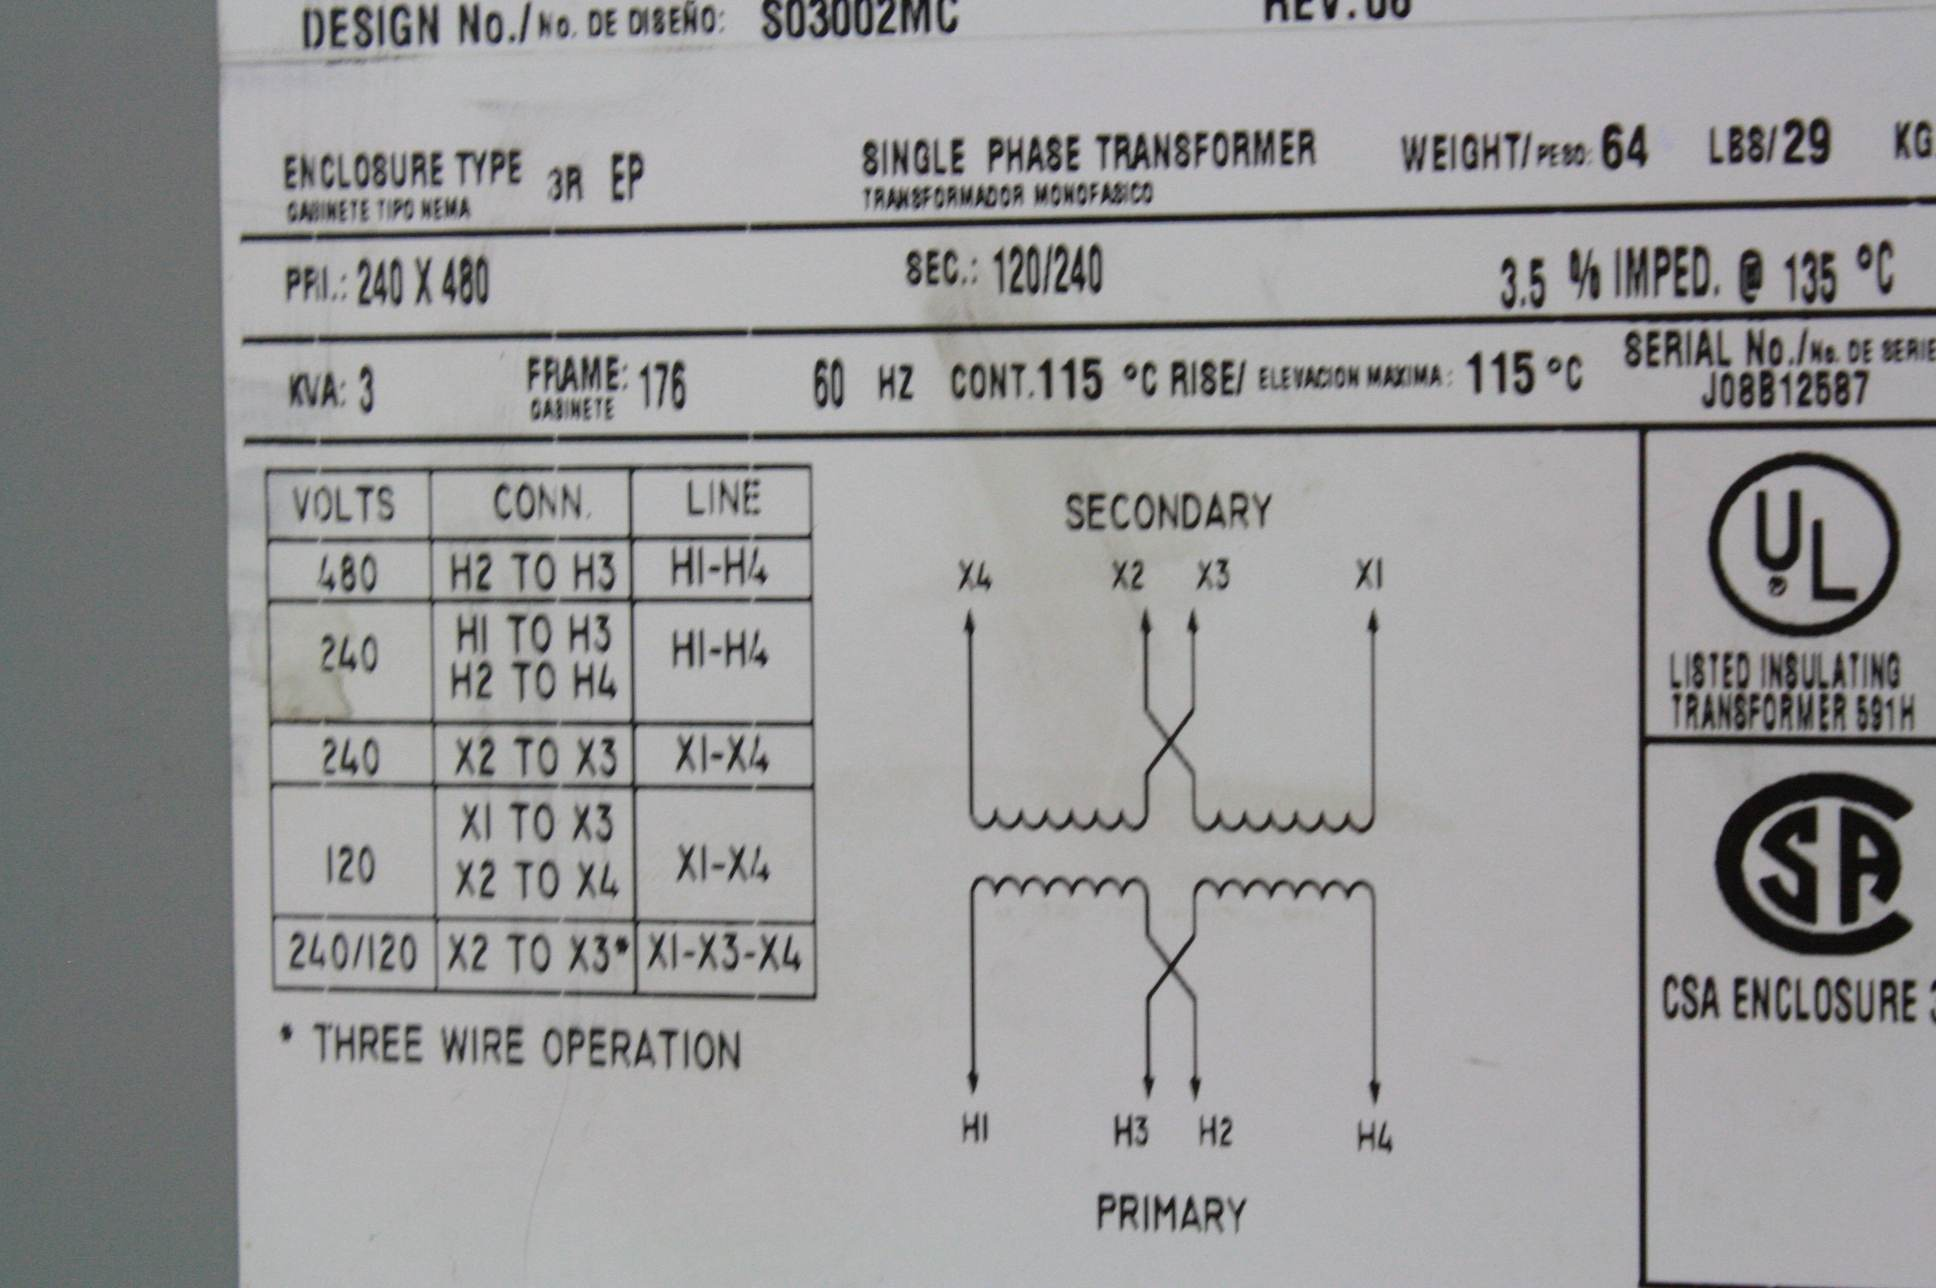 480 volt to 240 volt single phase transformer wiring diagram micron g003k1kf1a03 single phase transformer 3 kva / 240 ...